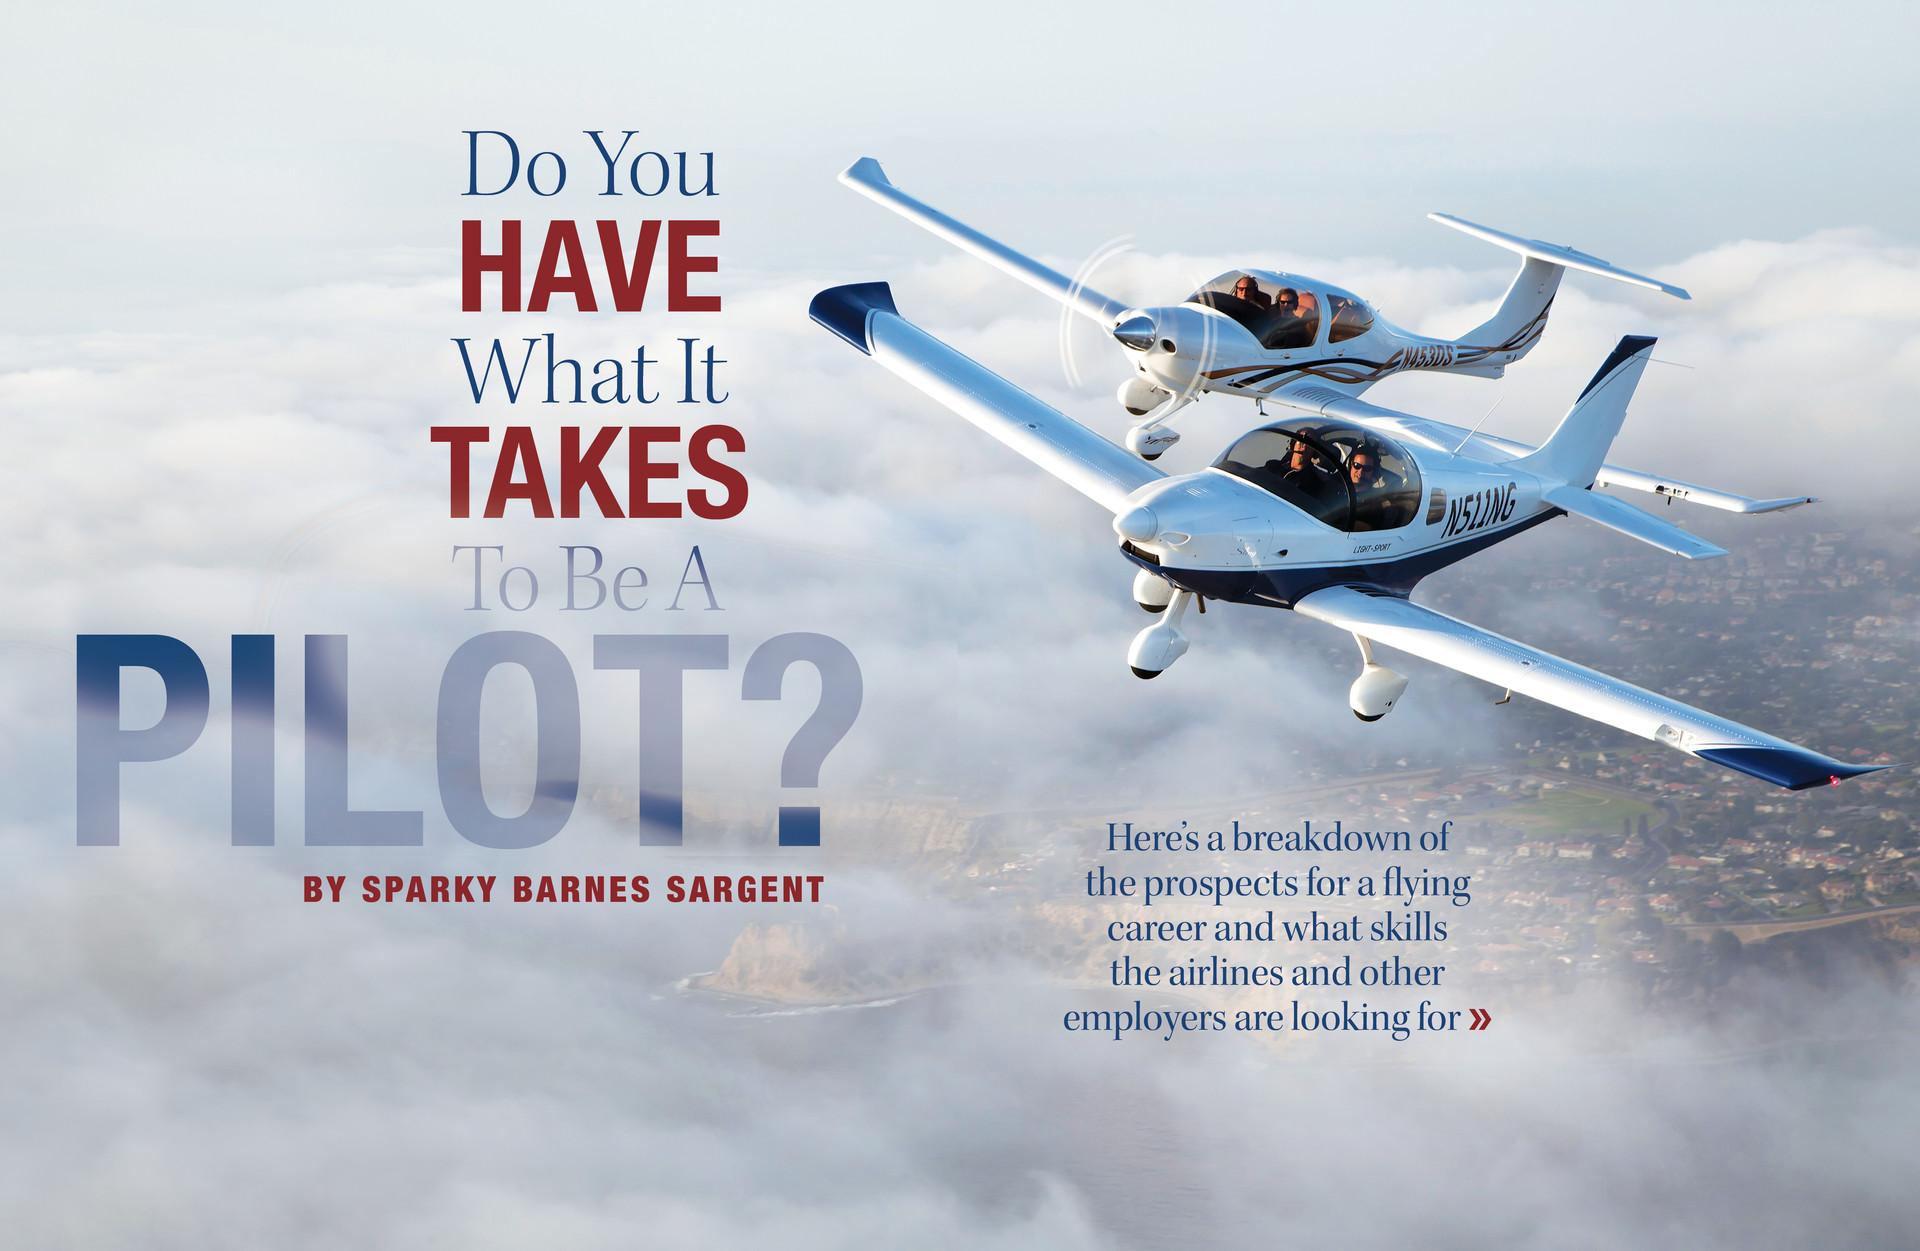 Do You Have What it Takes to Be a Pilot?